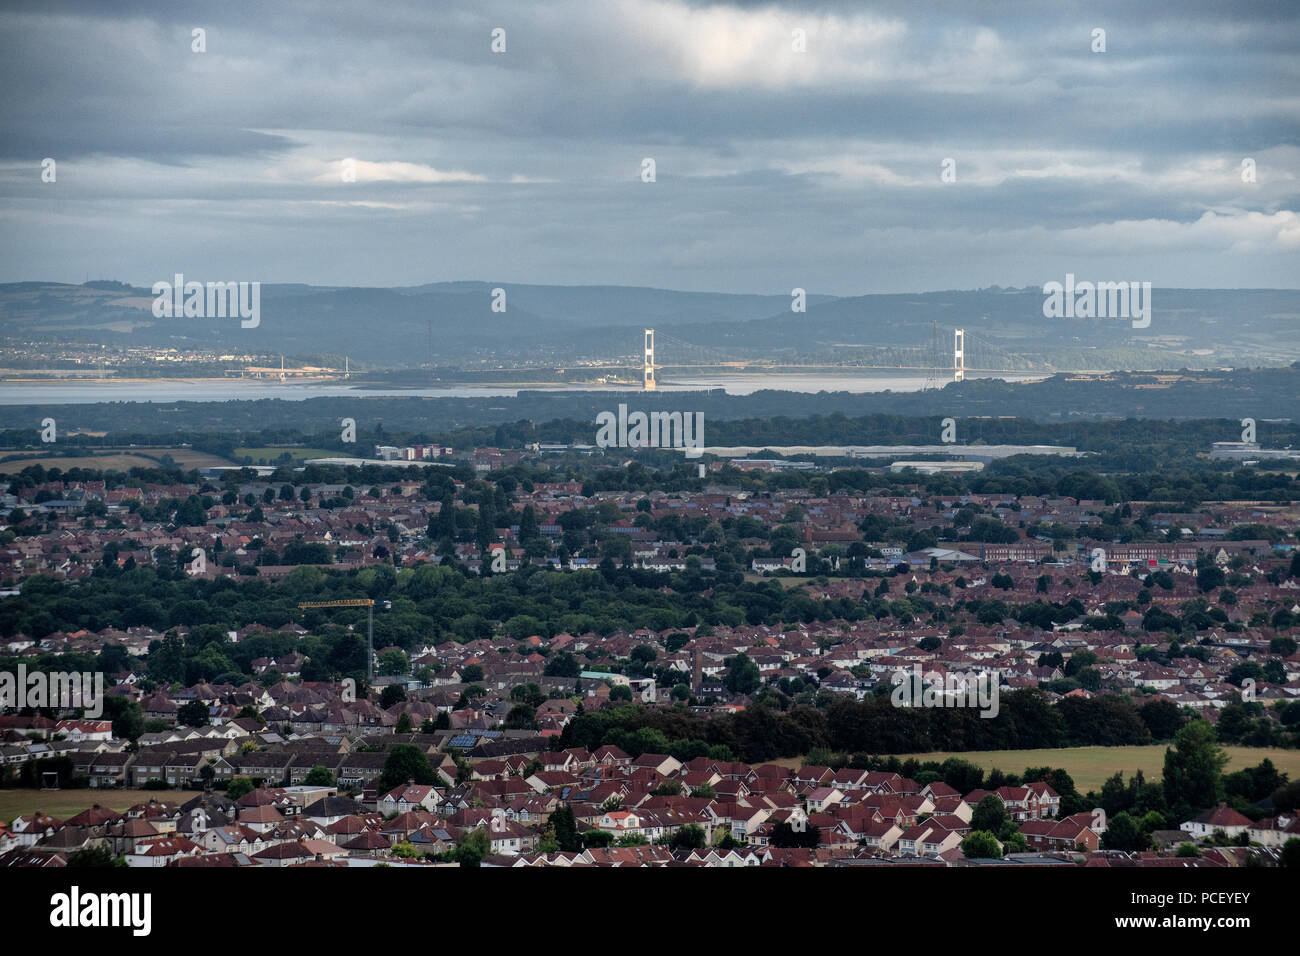 A view of the Severn Bridge from above the city of Bristol in the United Kingdom. - Stock Image